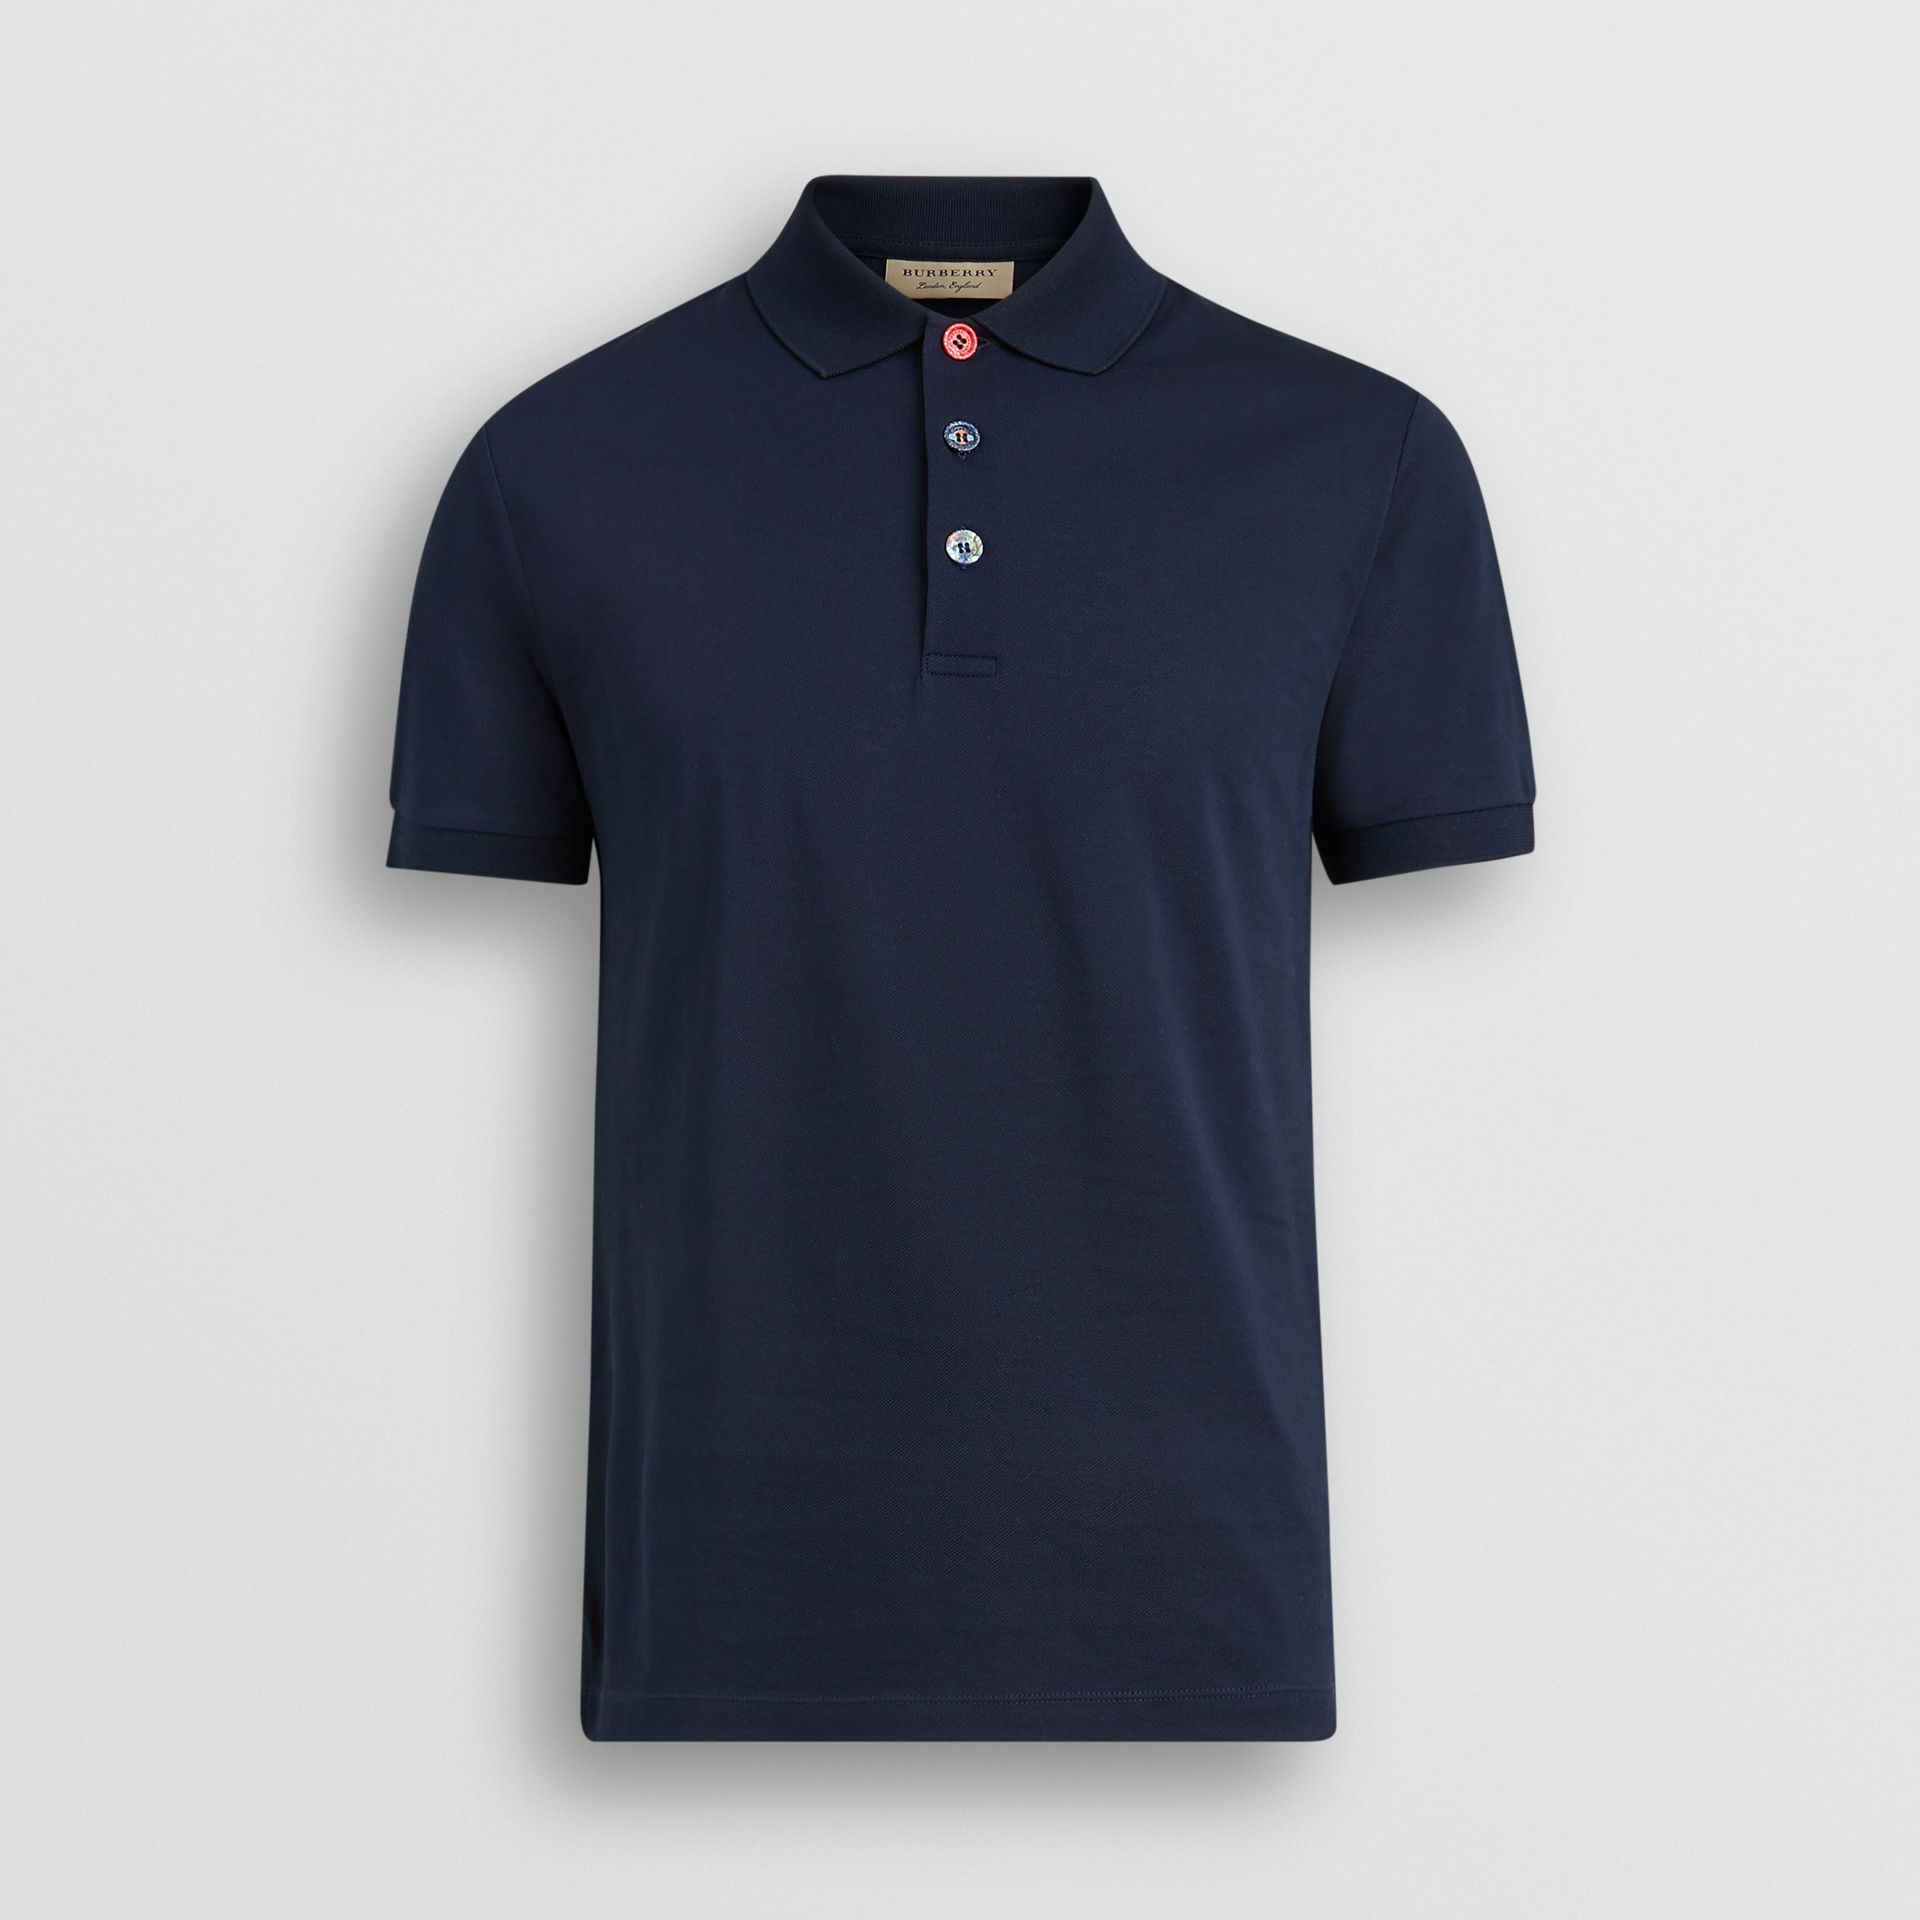 Painted Button Cotton Piqué Polo Shirt in Navy - Men | Burberry - gallery image 3